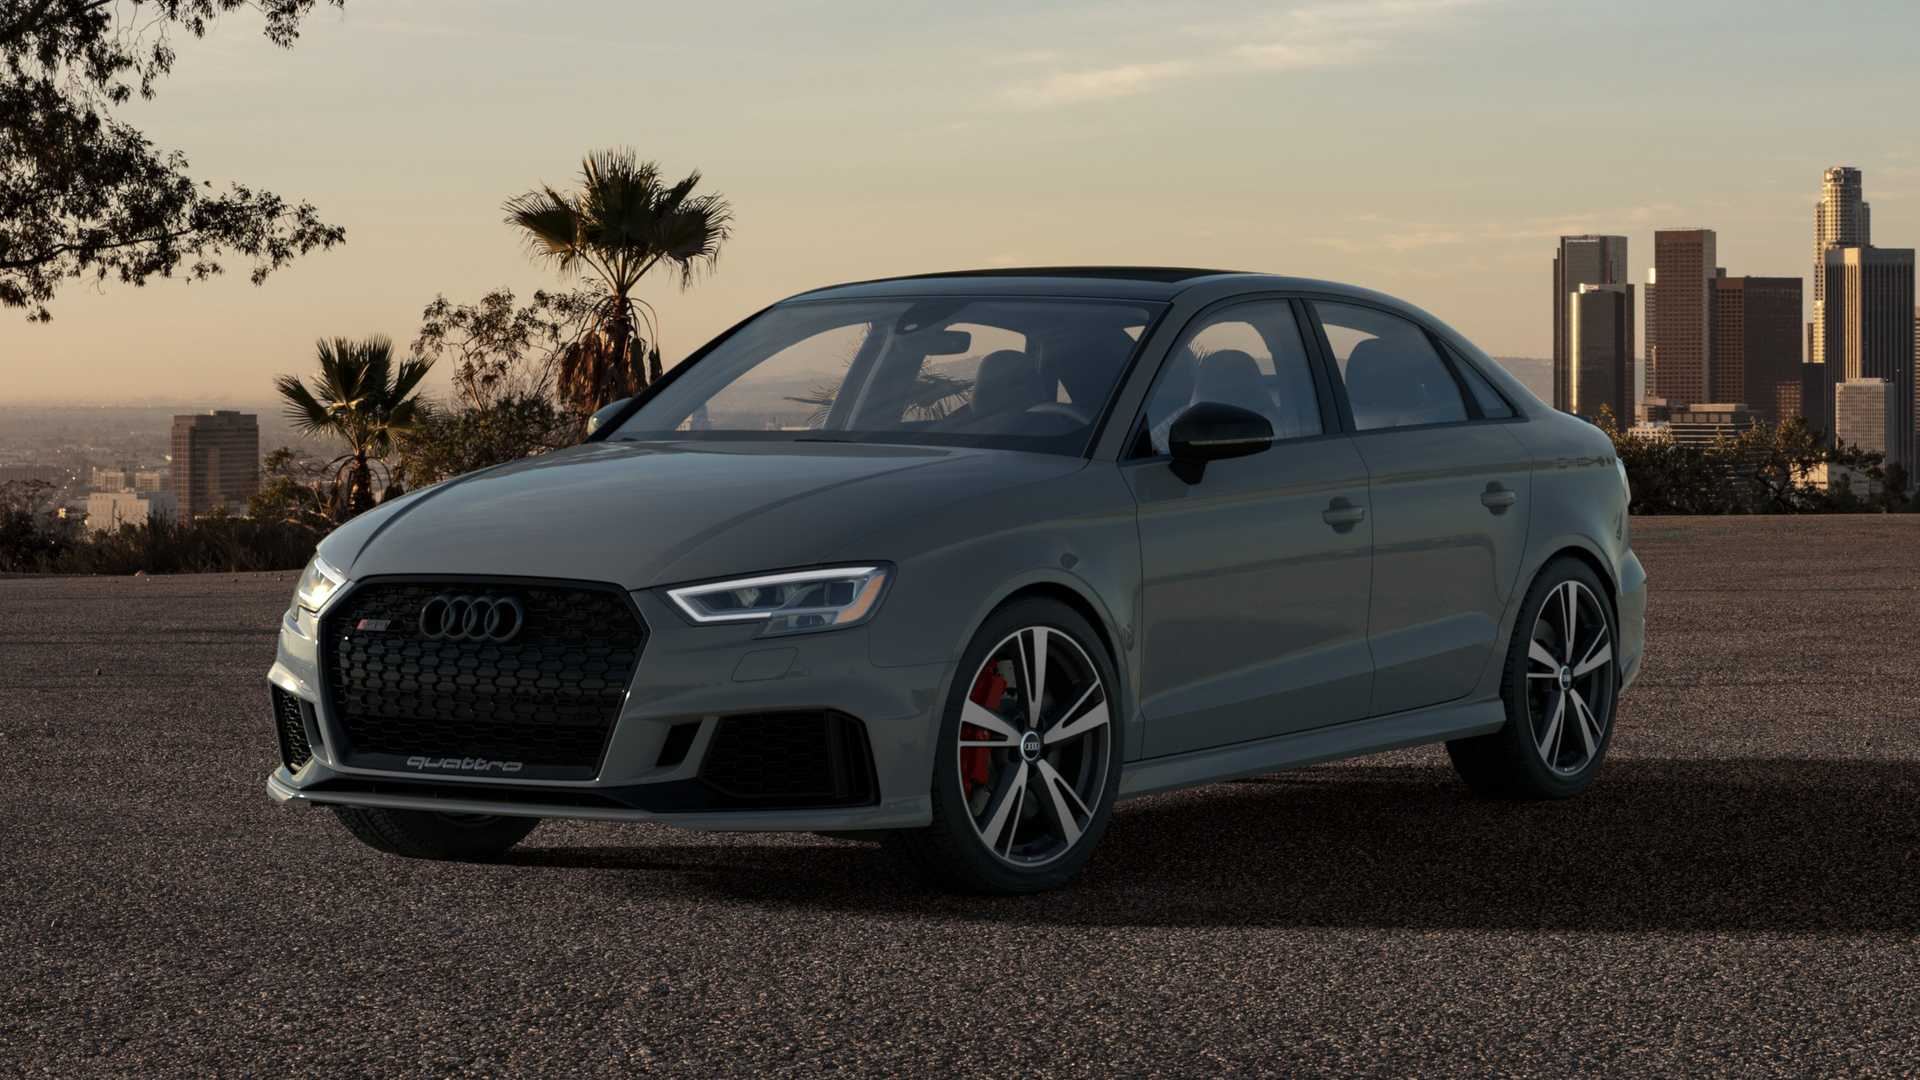 2020 Audi RS3 gets Nardo Edition in America